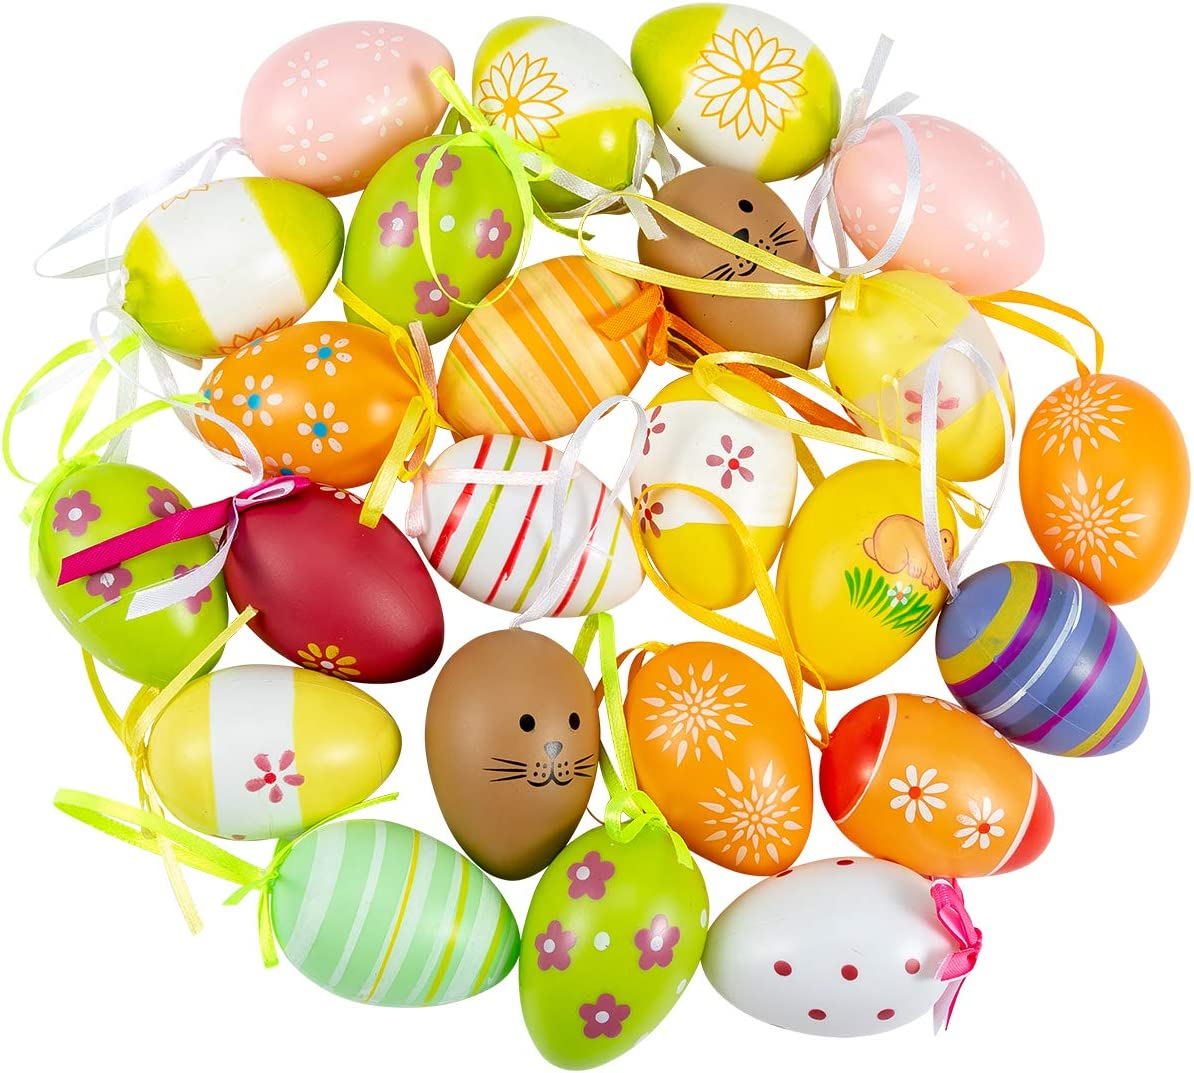 ANPHSIN 24 Pcs Multicolored Plastic Easter Egg Hanging Ornament- 2.3